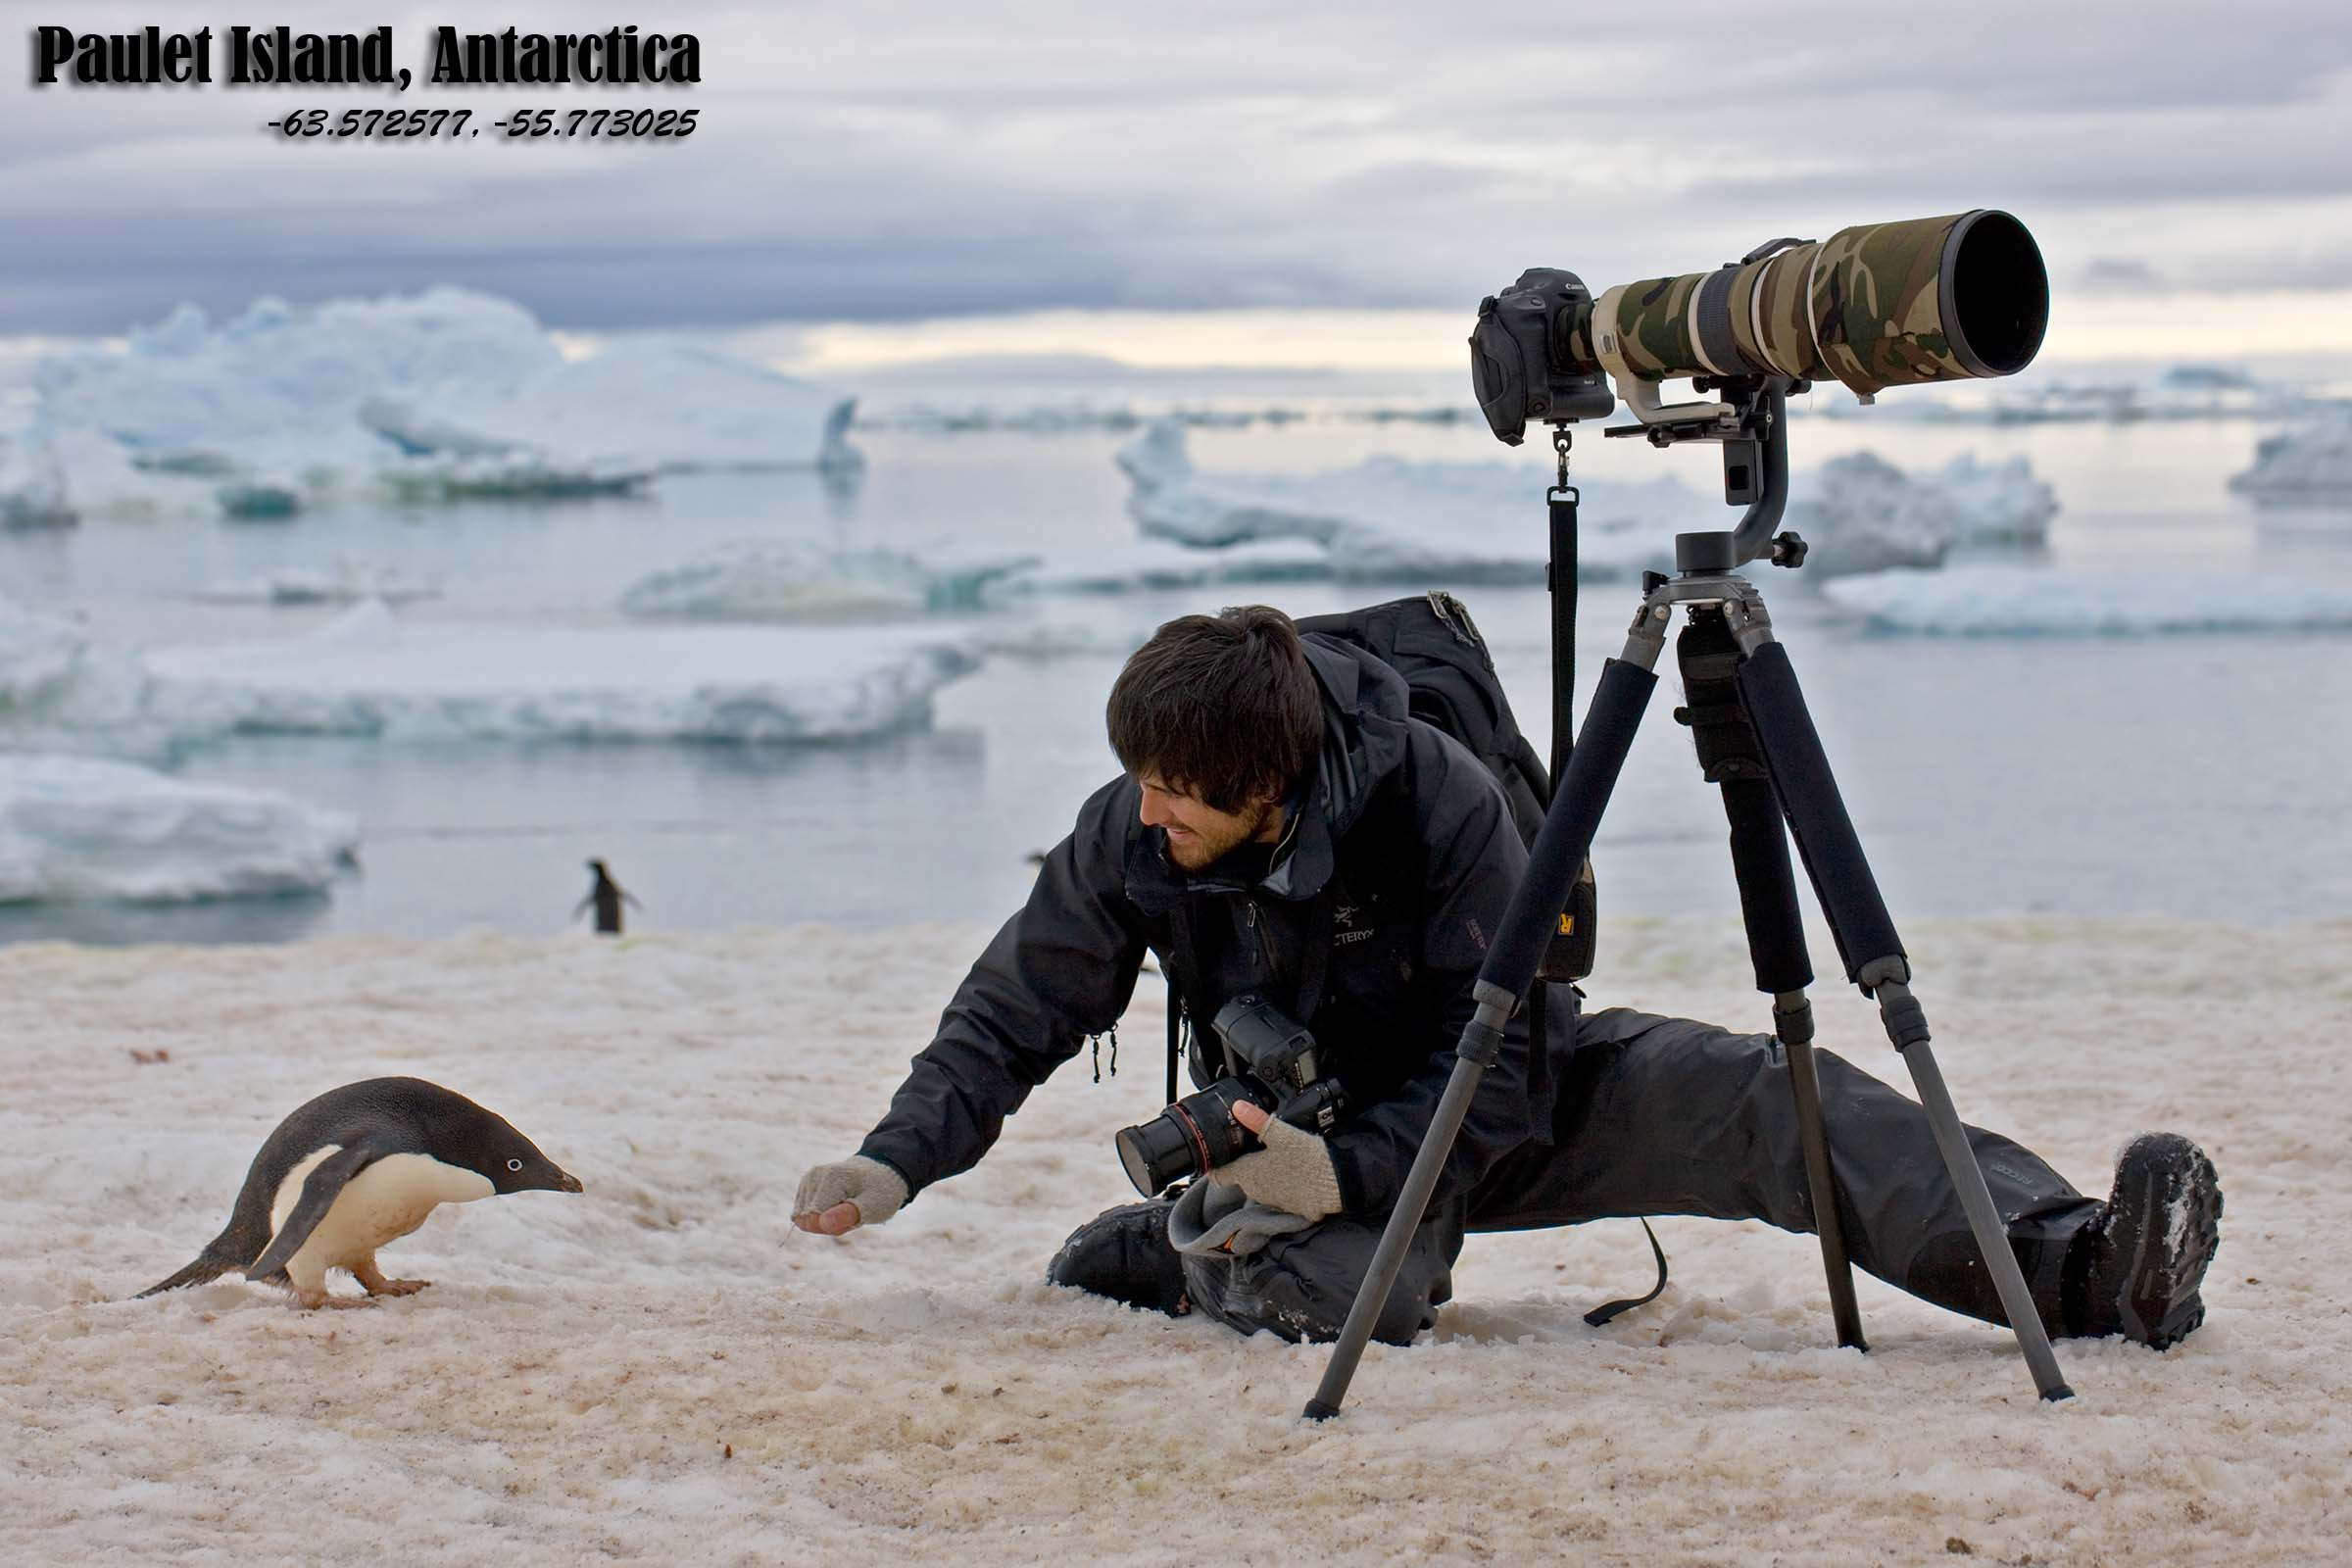 Christopher making friends with an Adelie Penguin on Antartica